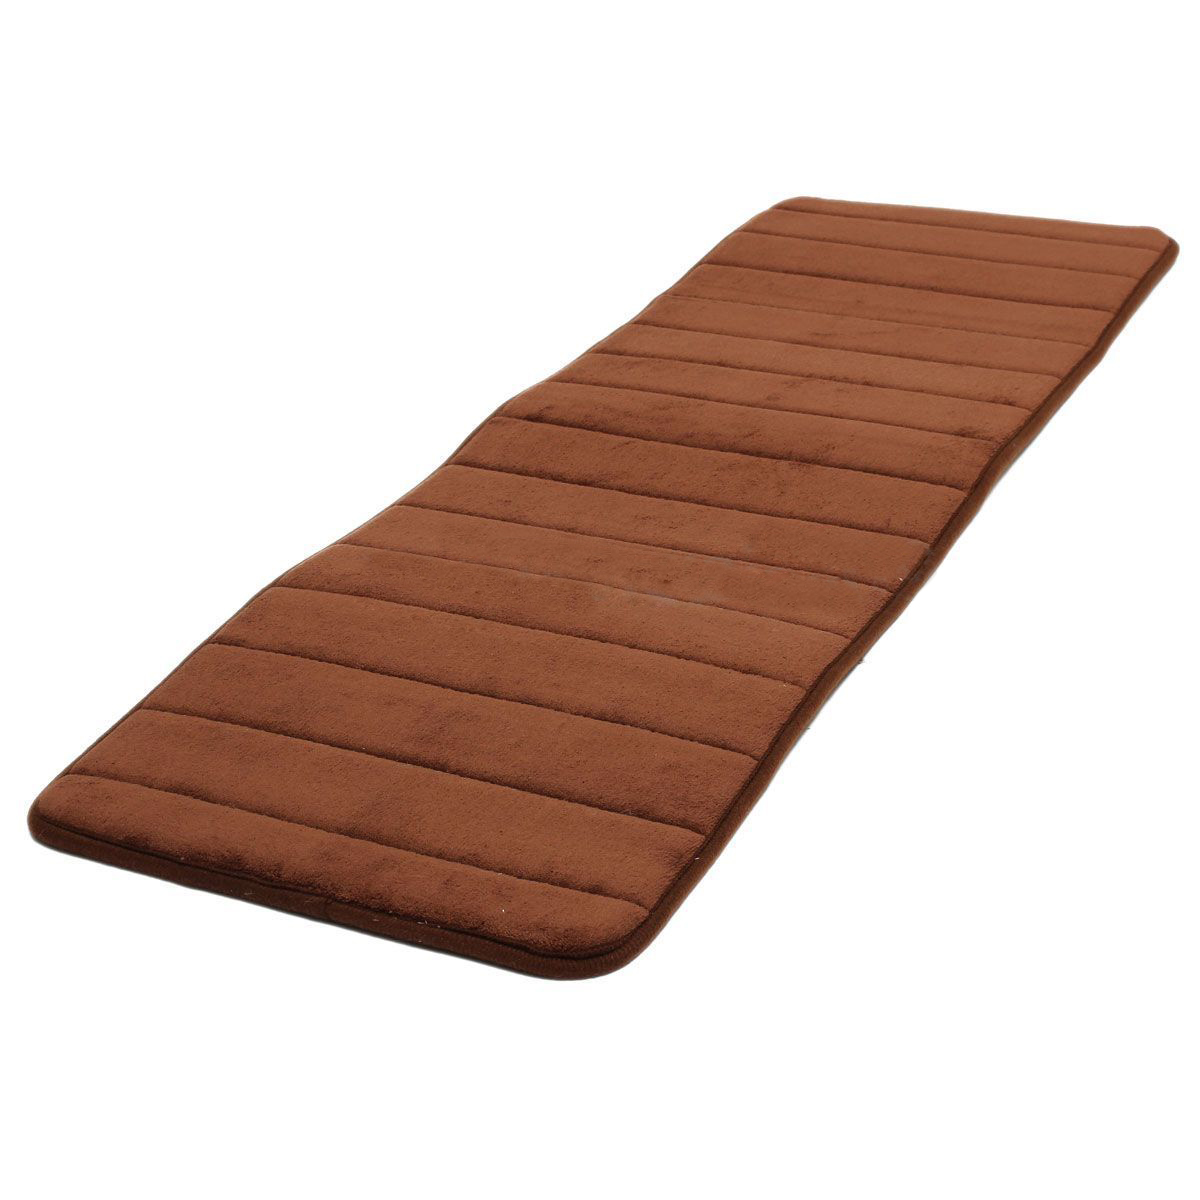 Foam Kitchen Floor Mats Compare Prices On Memory Foam Kitchen Rug Online Shopping Buy Low